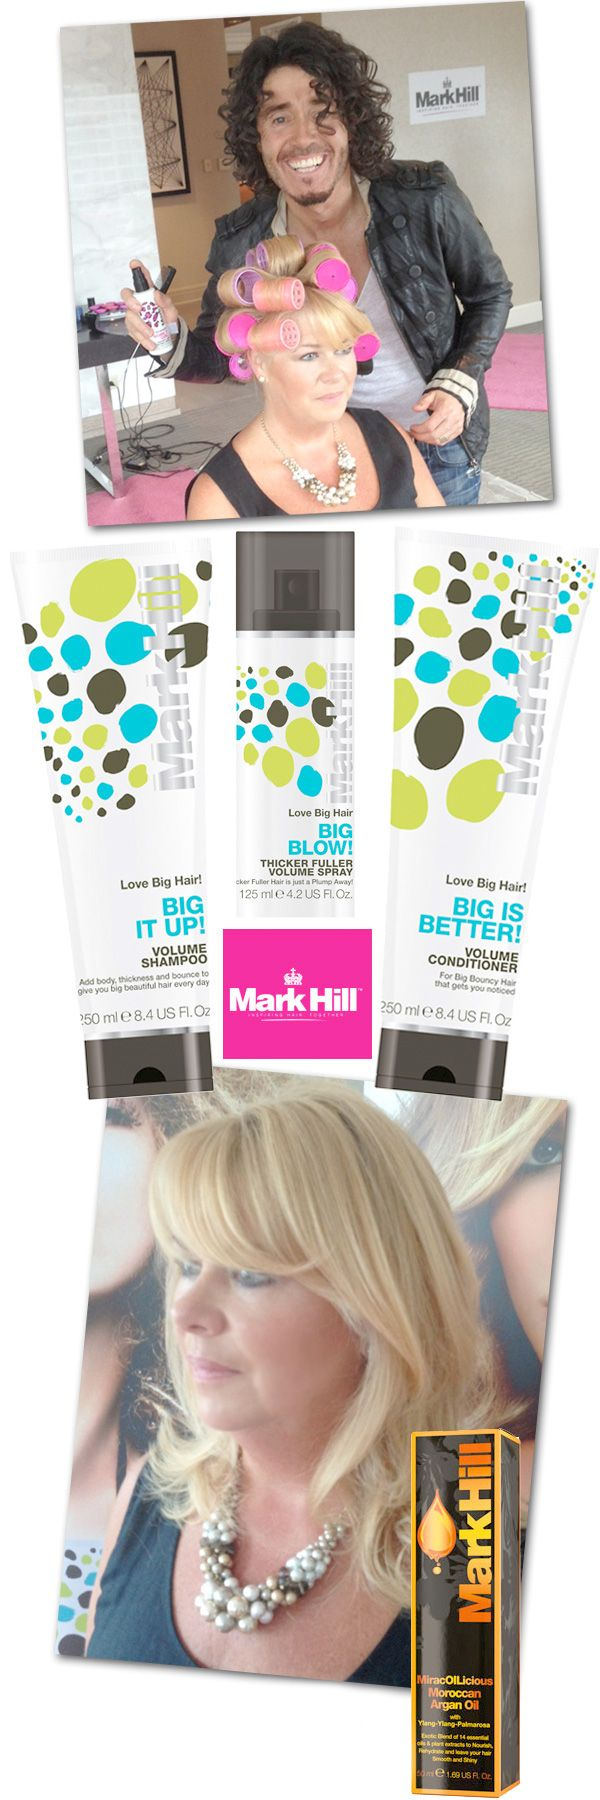 Mark Hill Hair Now in the US at Walgreens.  Big hit in the UK - now only available in the US at WALGREENS!